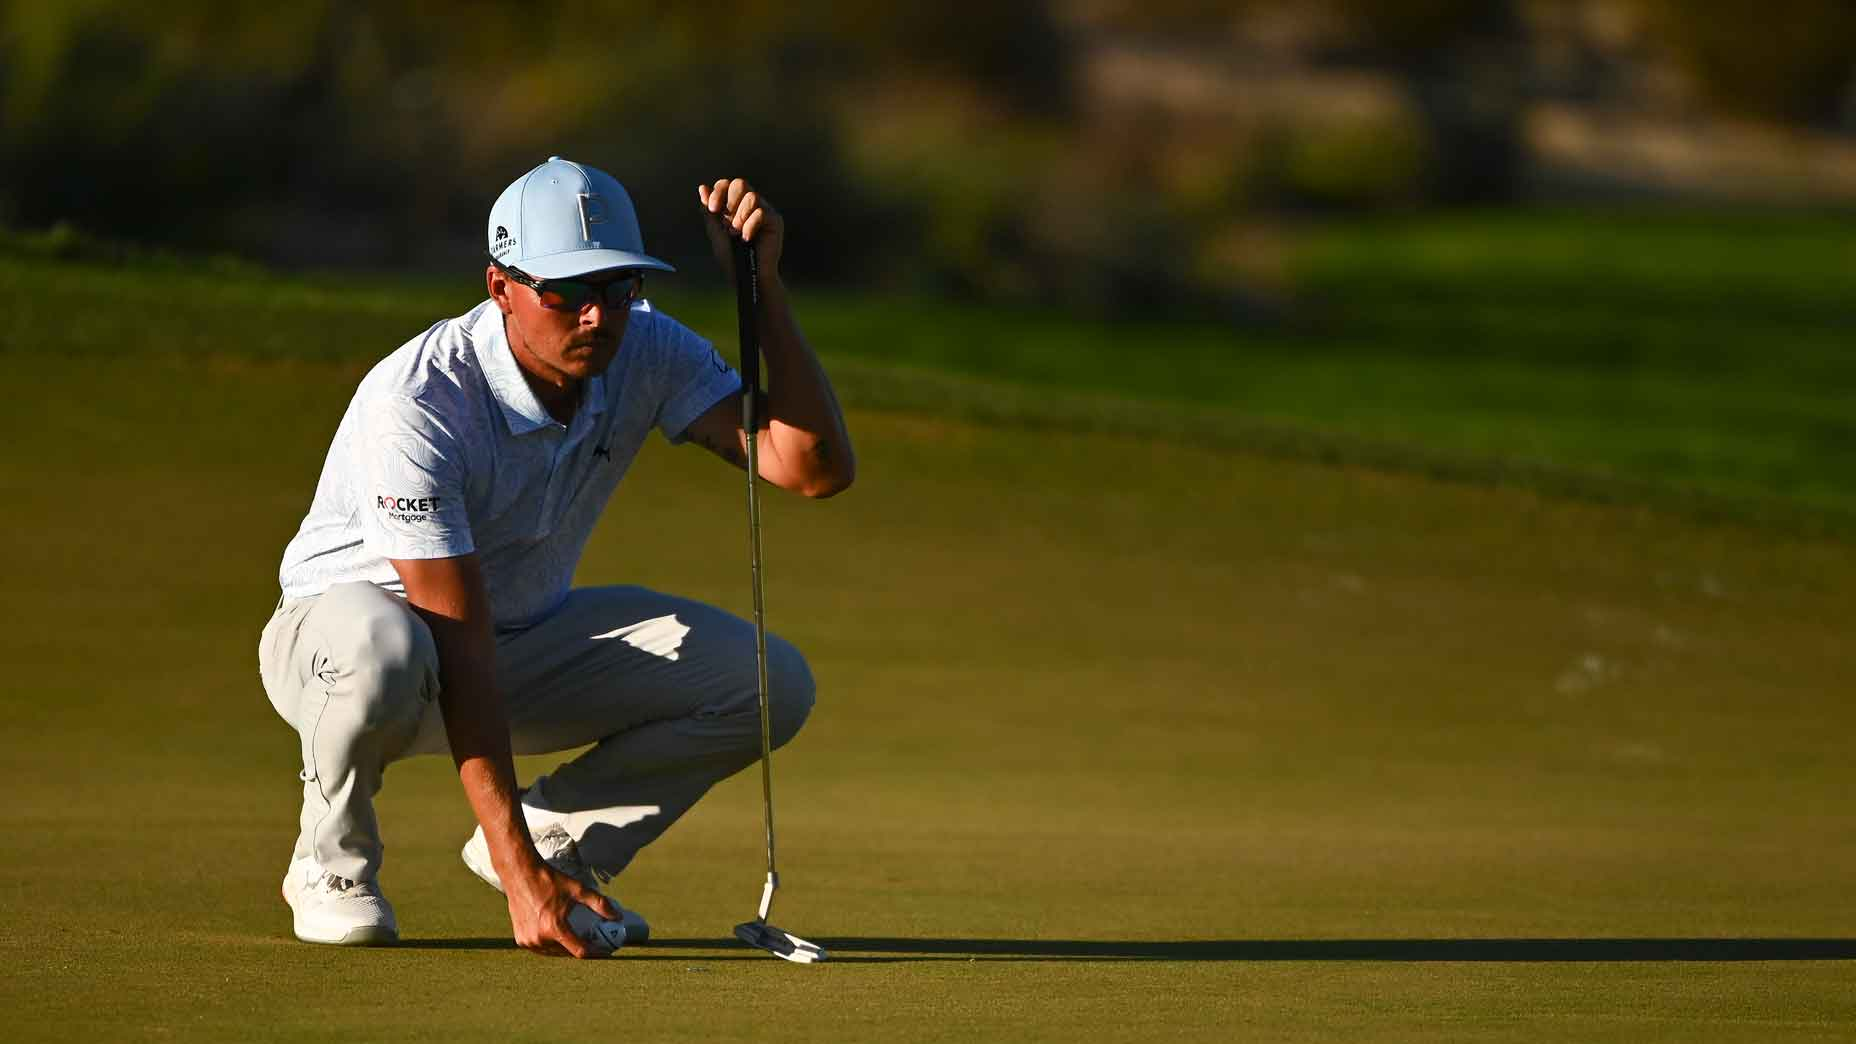 Rickie Fowler crouches over a putt